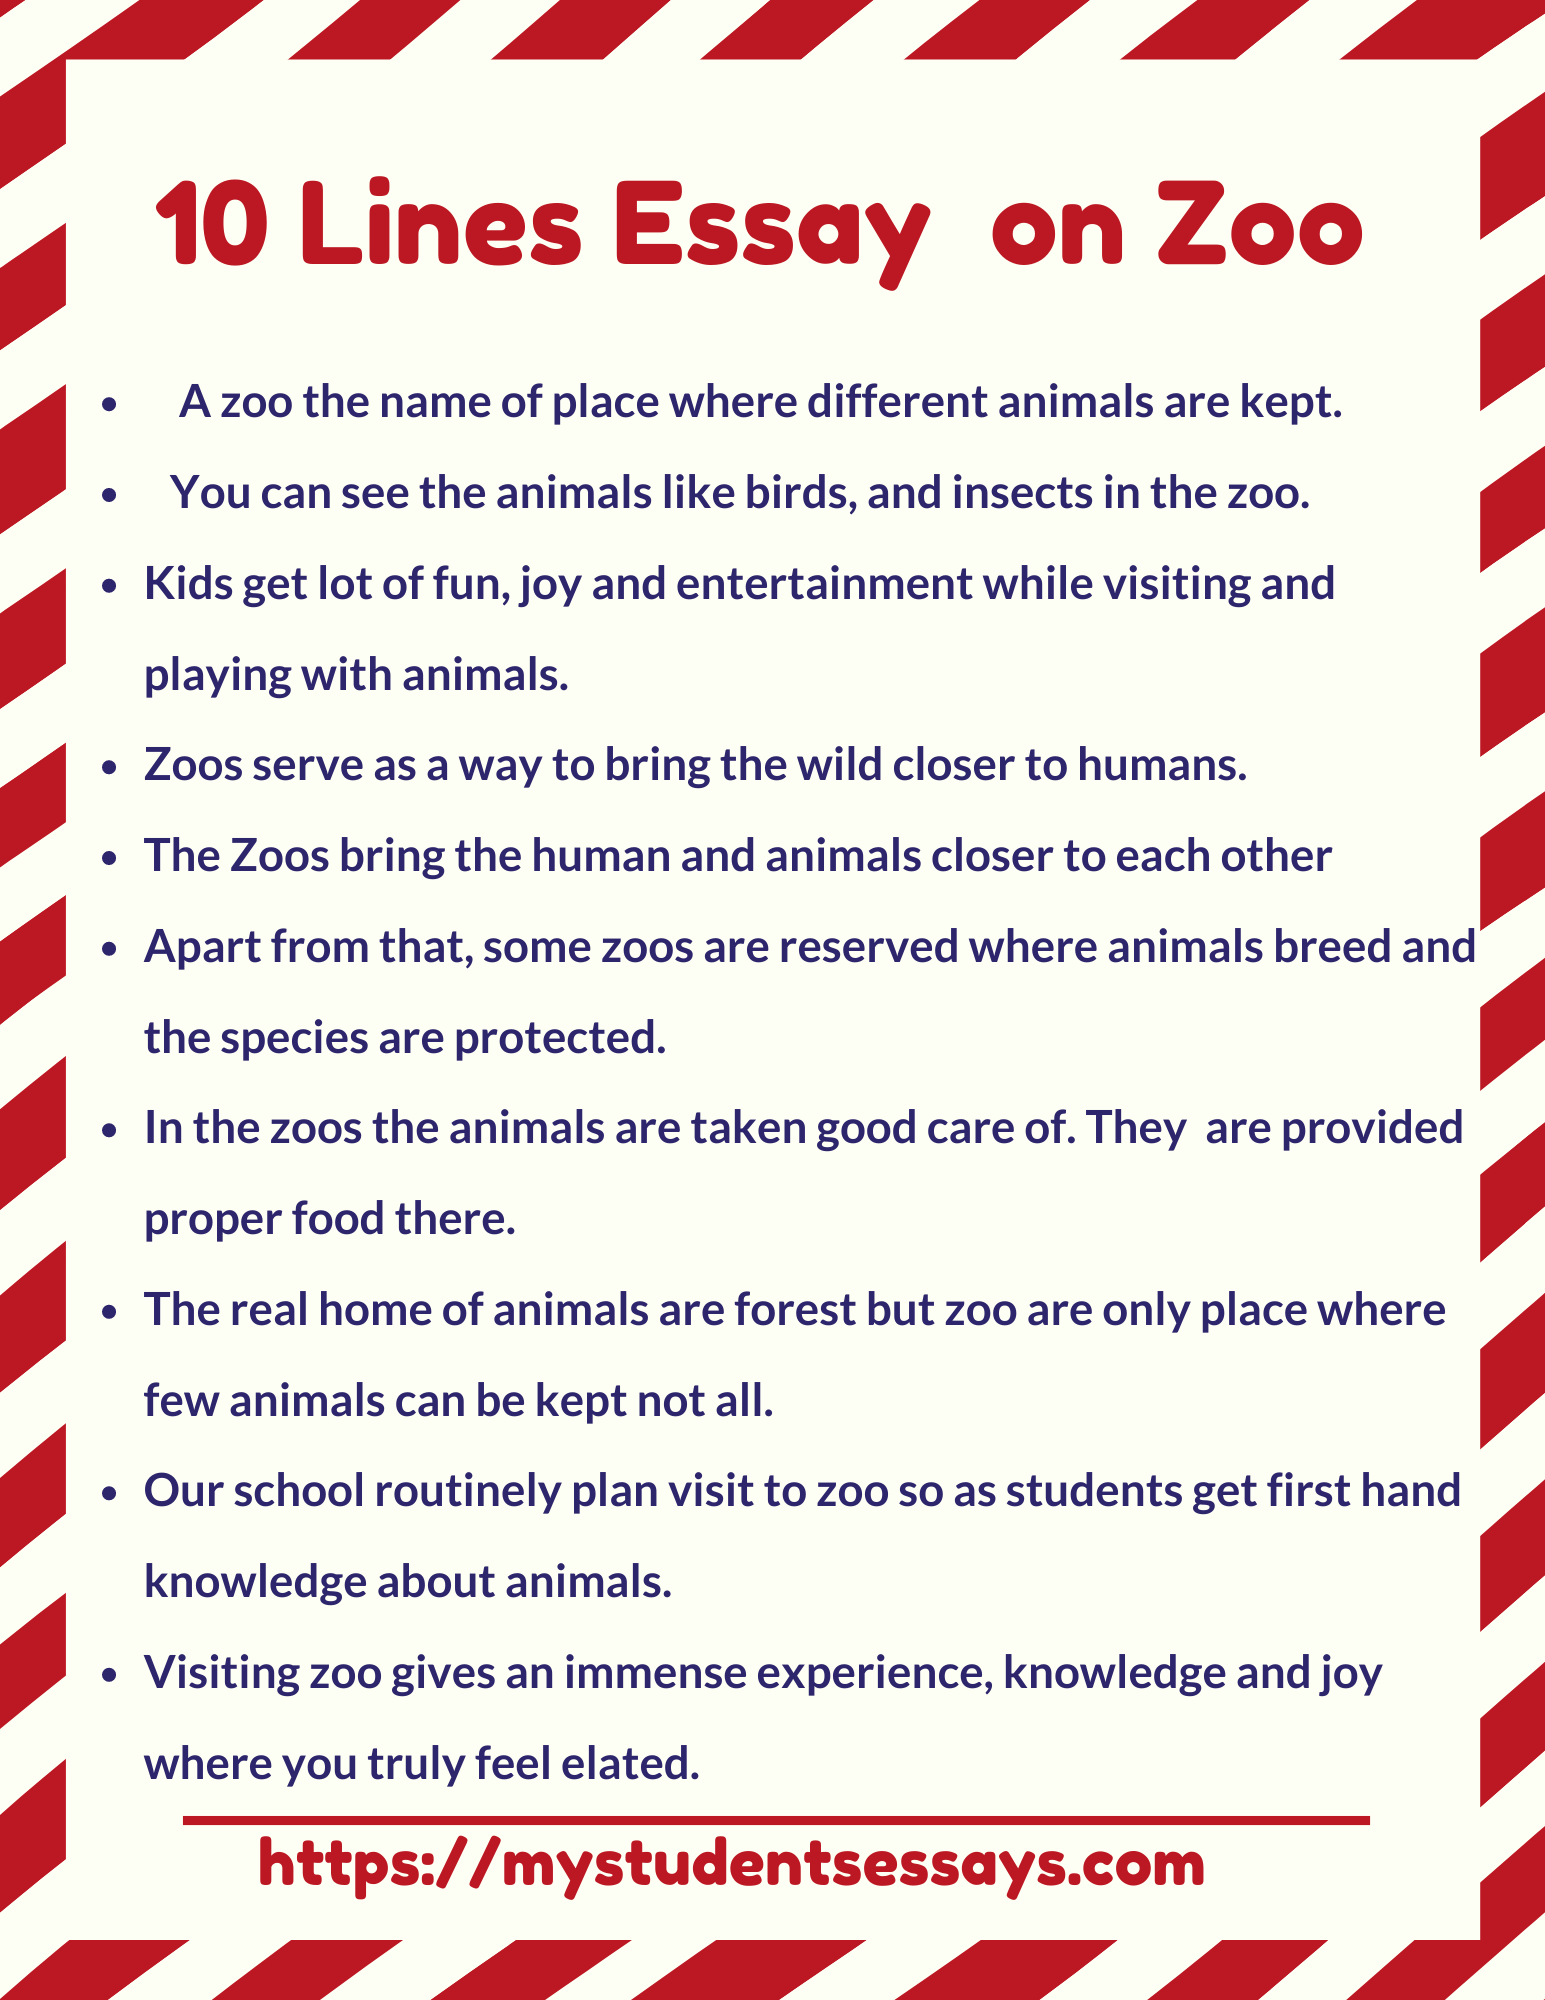 10 lines essay on zoo for students